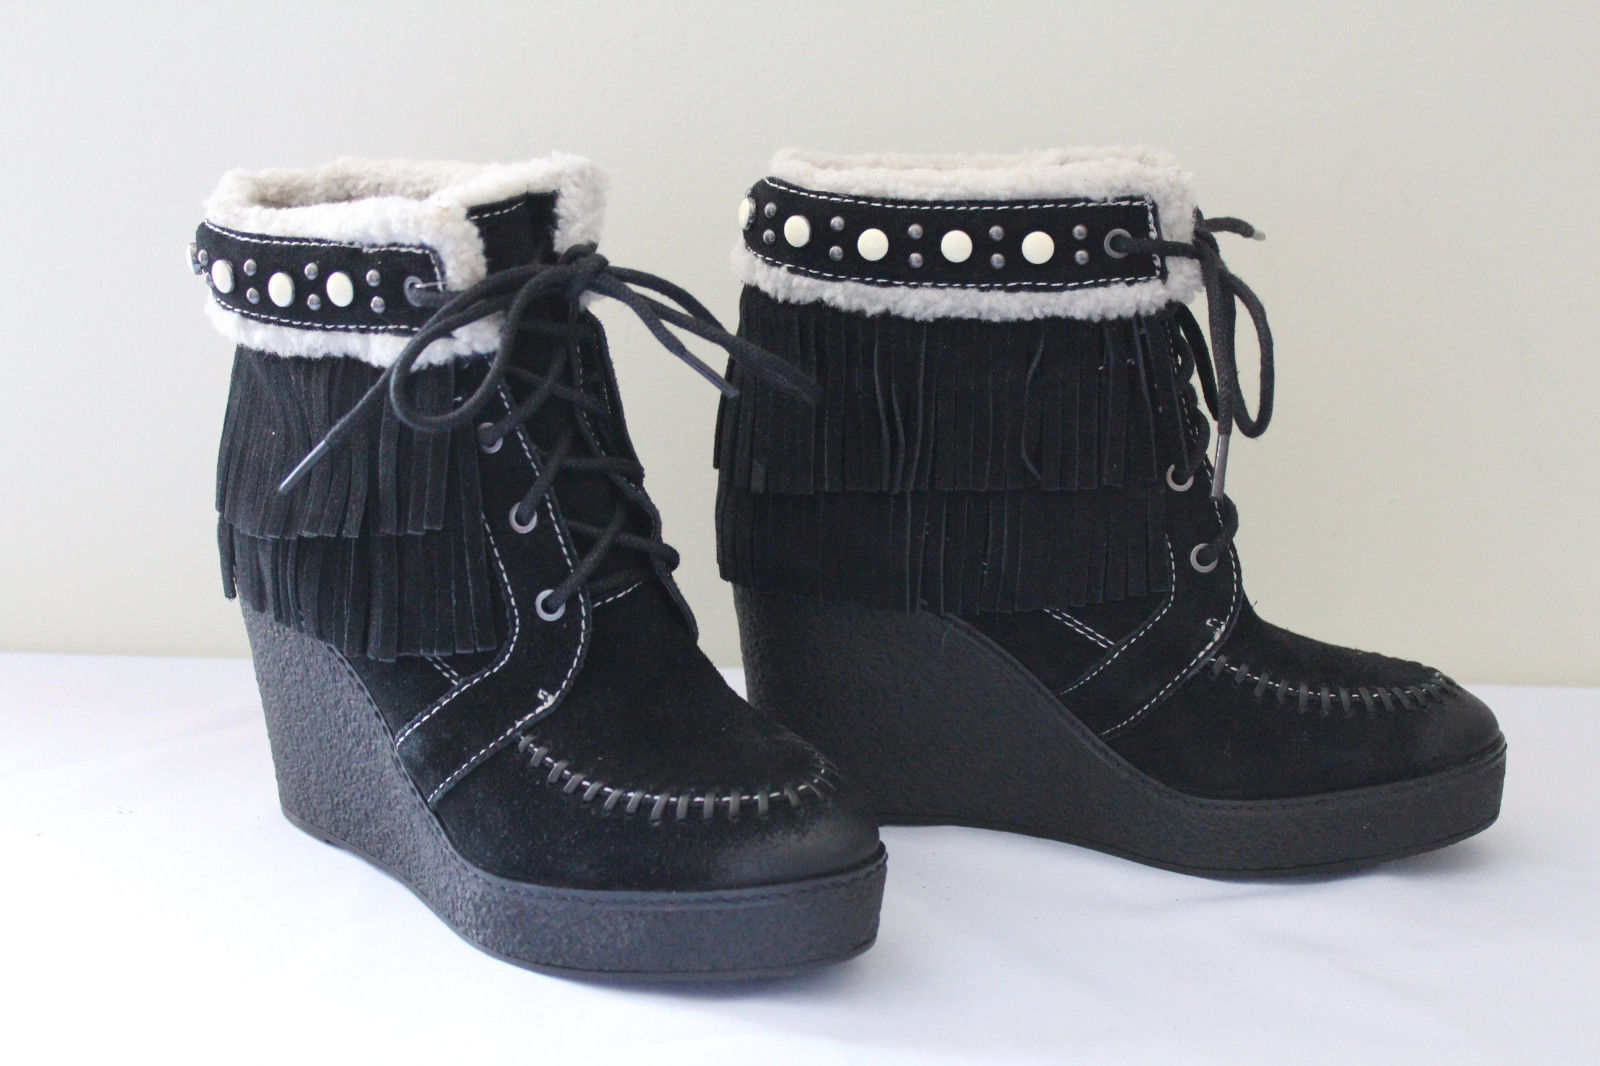 dcd281b65a7d S l1600. S l1600. Previous. NEW! Sam Edelman Black Suede Leather Fringe  Studded Kemper Boots 7 M  150